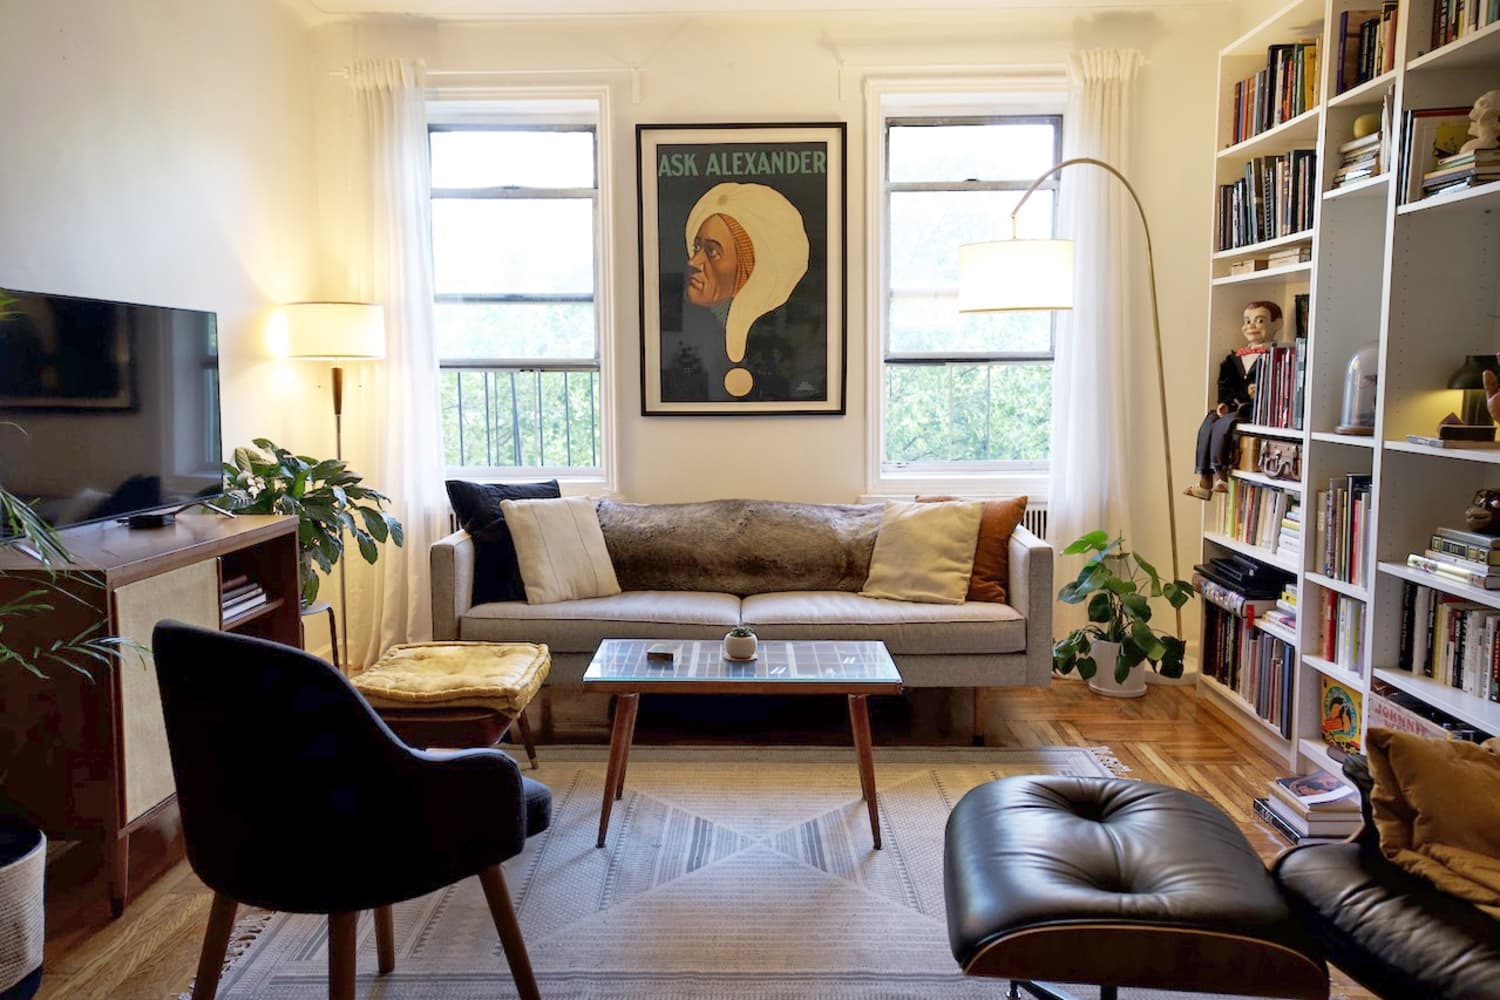 This Mentalist's Small Brooklyn Studio Apartment Is a 'Curated Mind Museum'